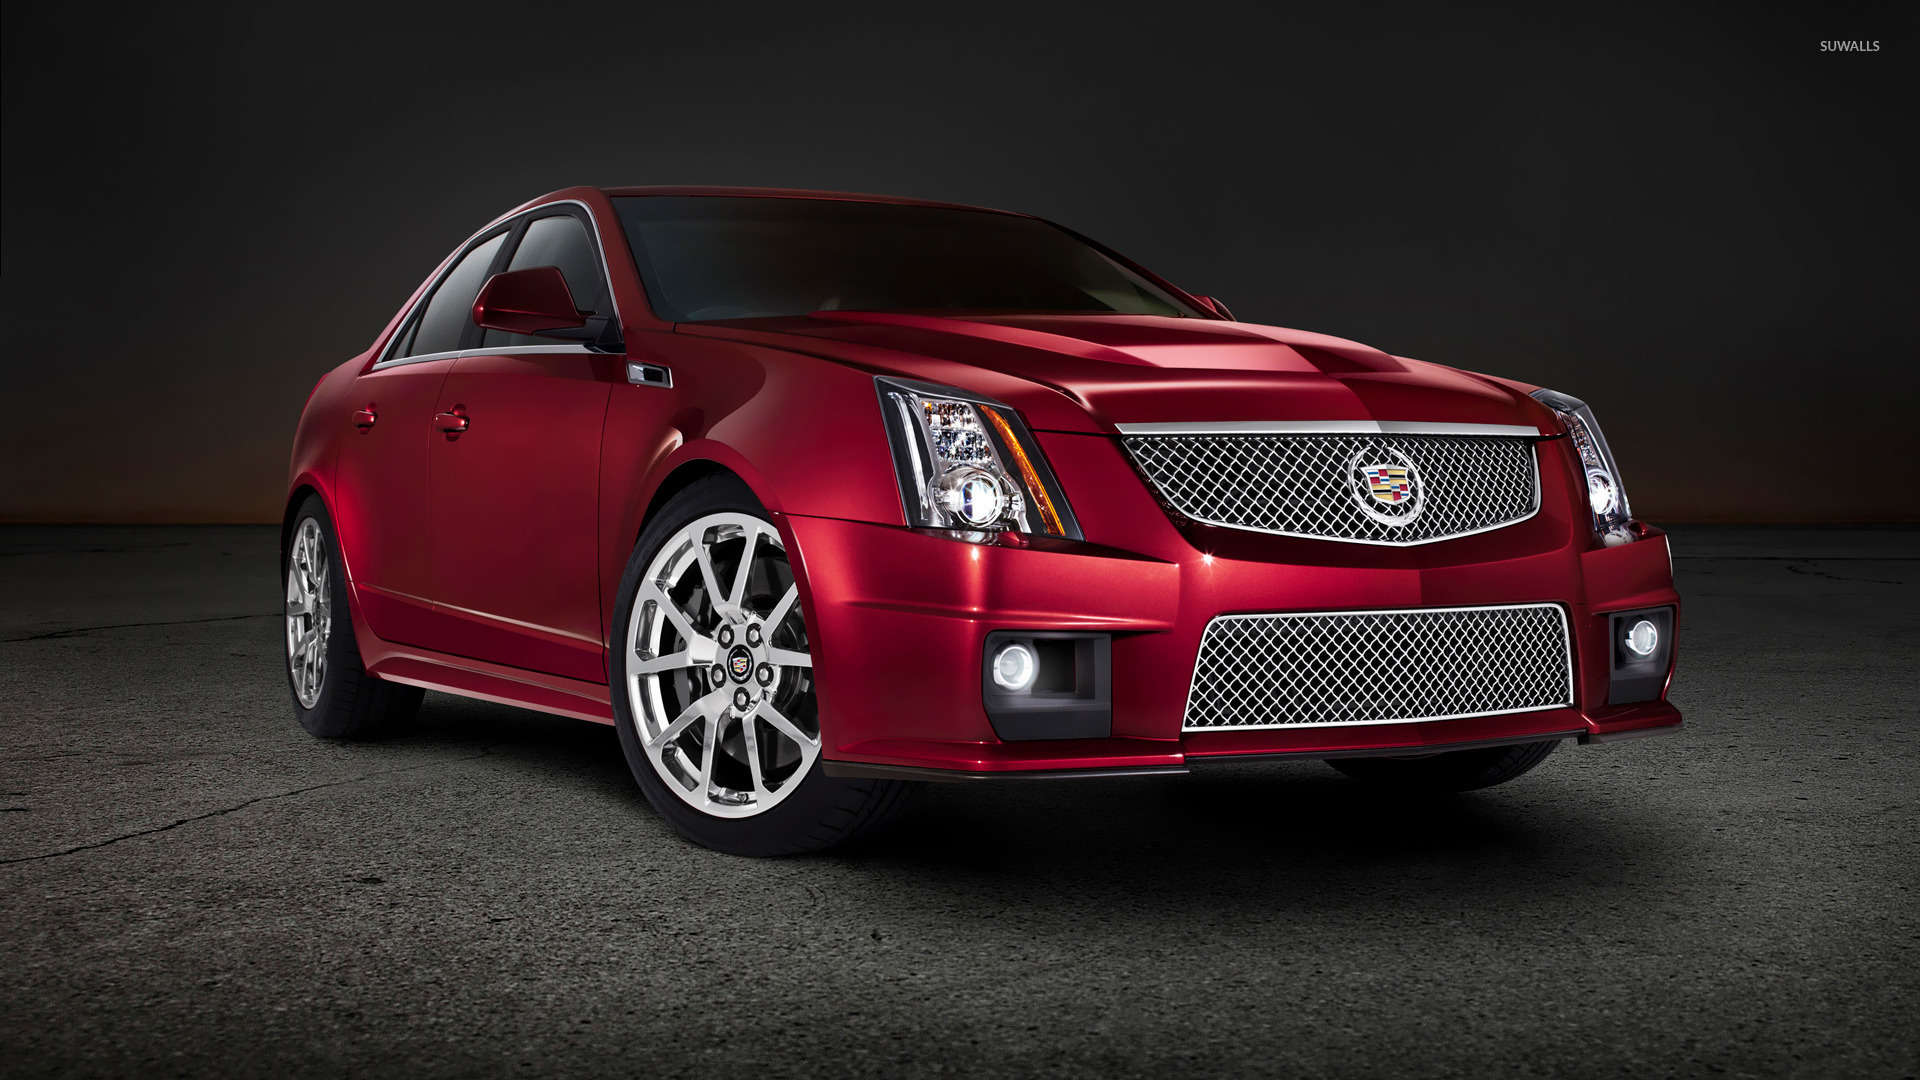 2013 cadillac cts v sport sedan wallpaper car wallpapers. Black Bedroom Furniture Sets. Home Design Ideas